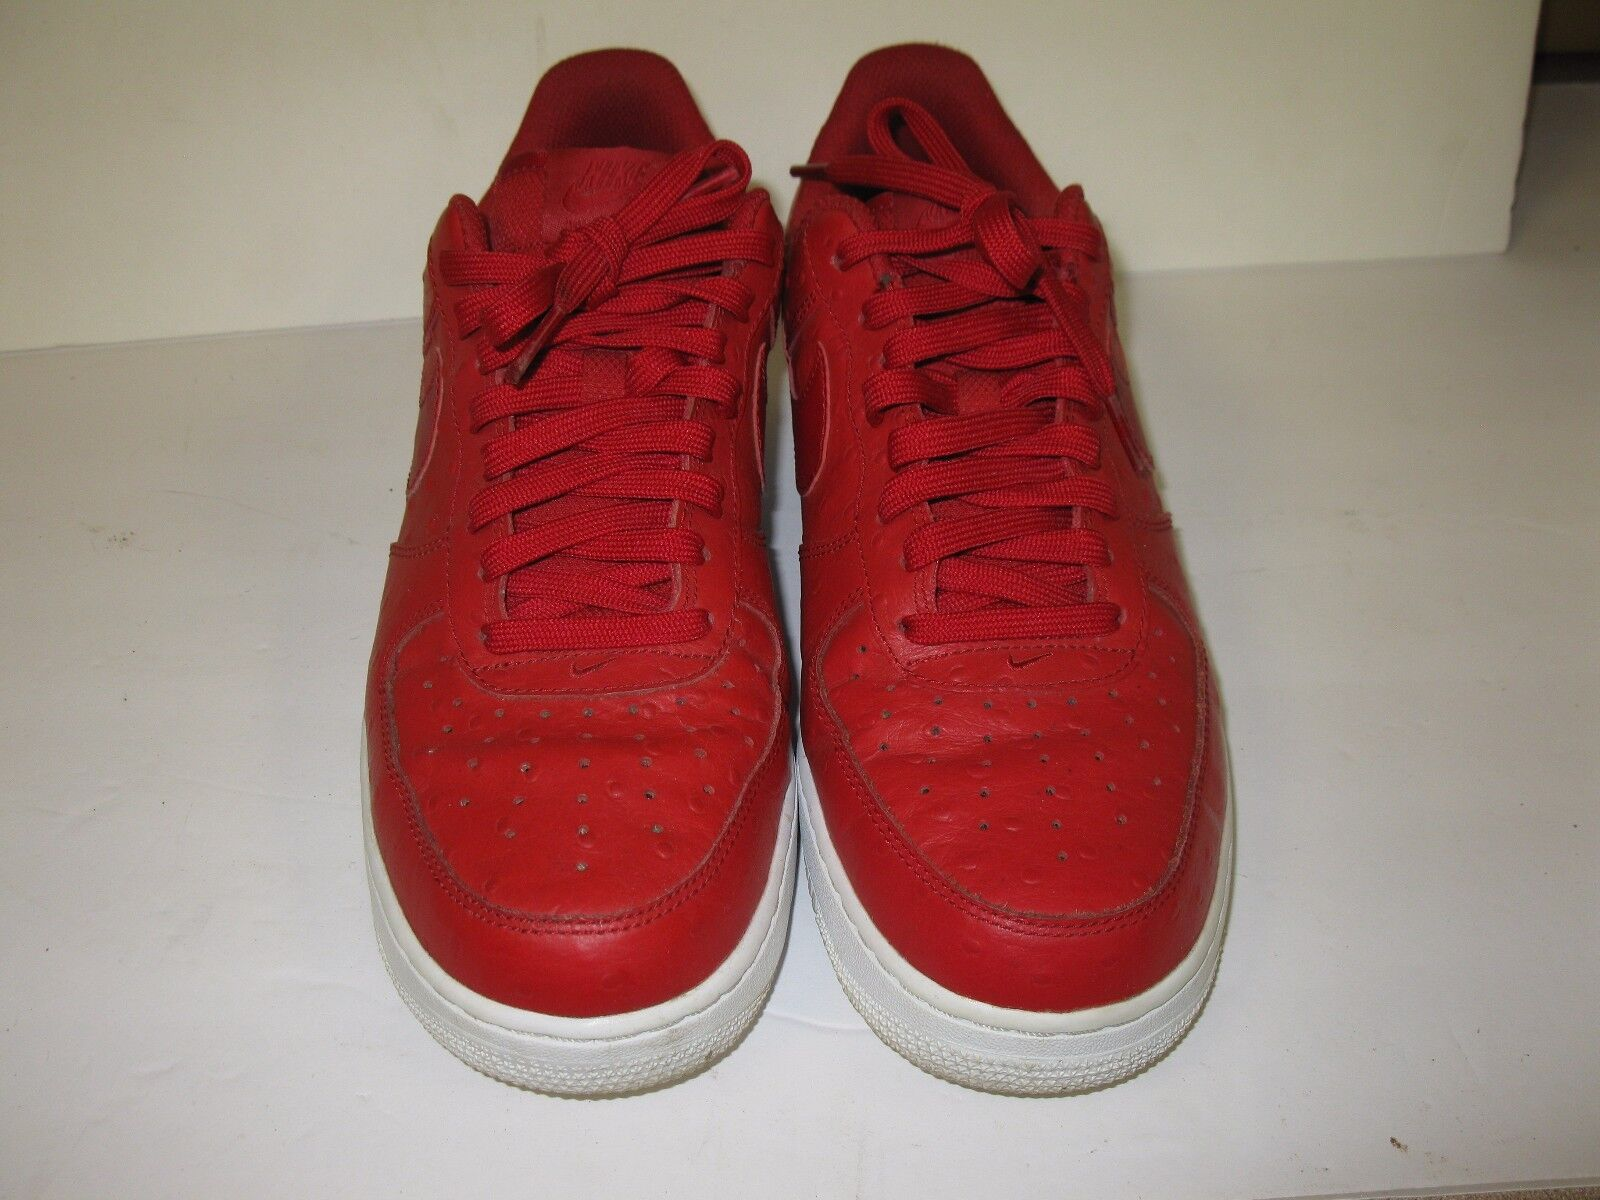 NIKE AIR FORCE 1 '07 LV8 MEN'S GYM RED WHITE 718152-603 Price reduction The latest discount shoes for men and women